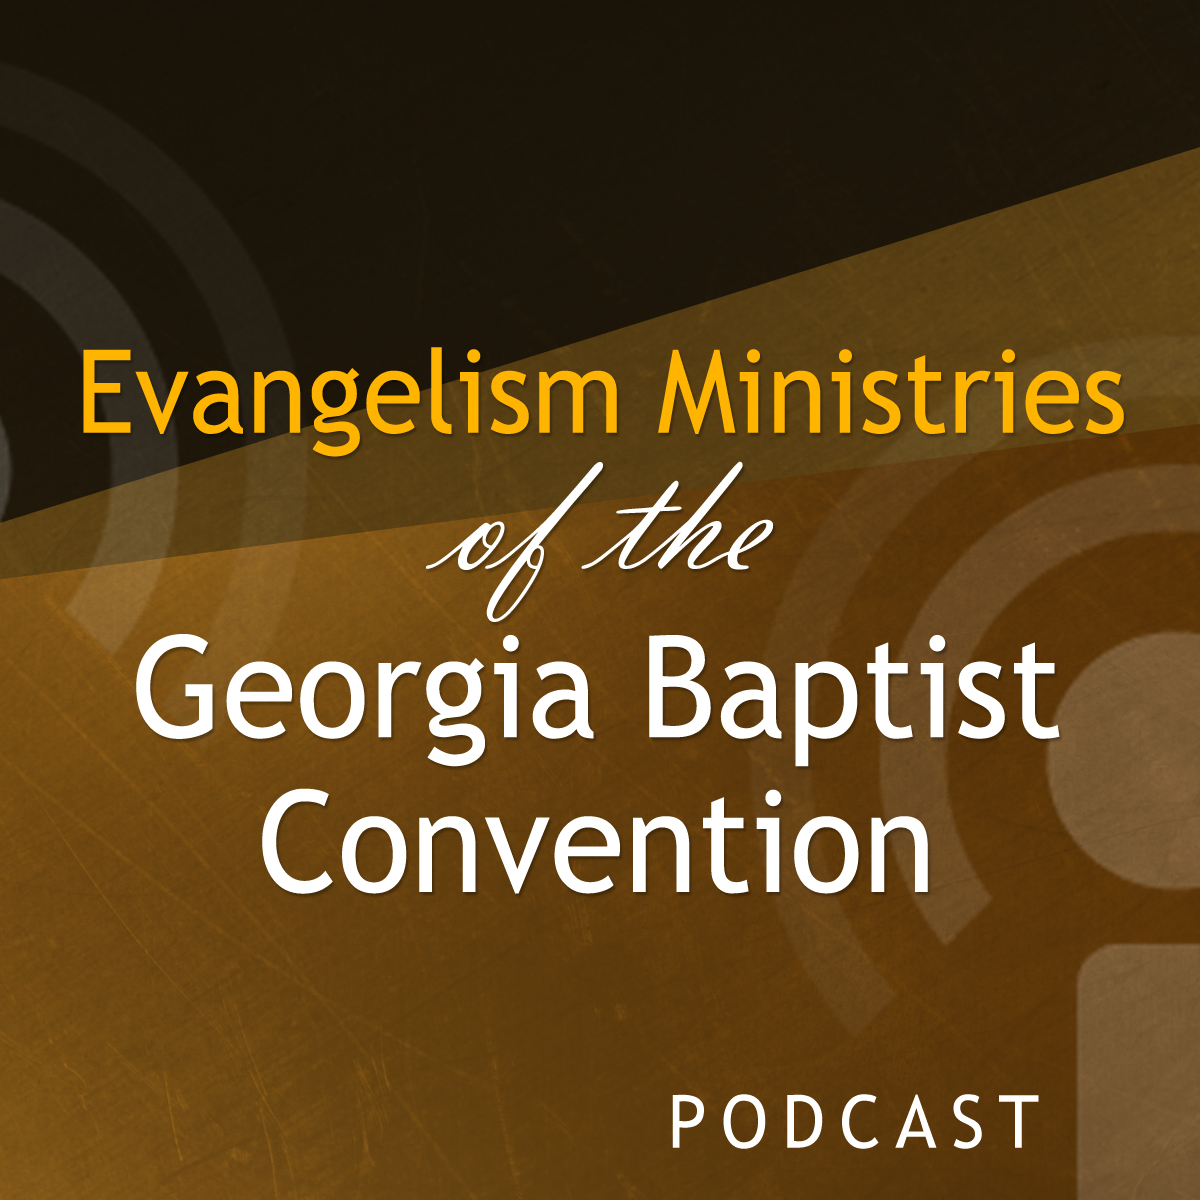 GBC Evangelism Ministries Podcast